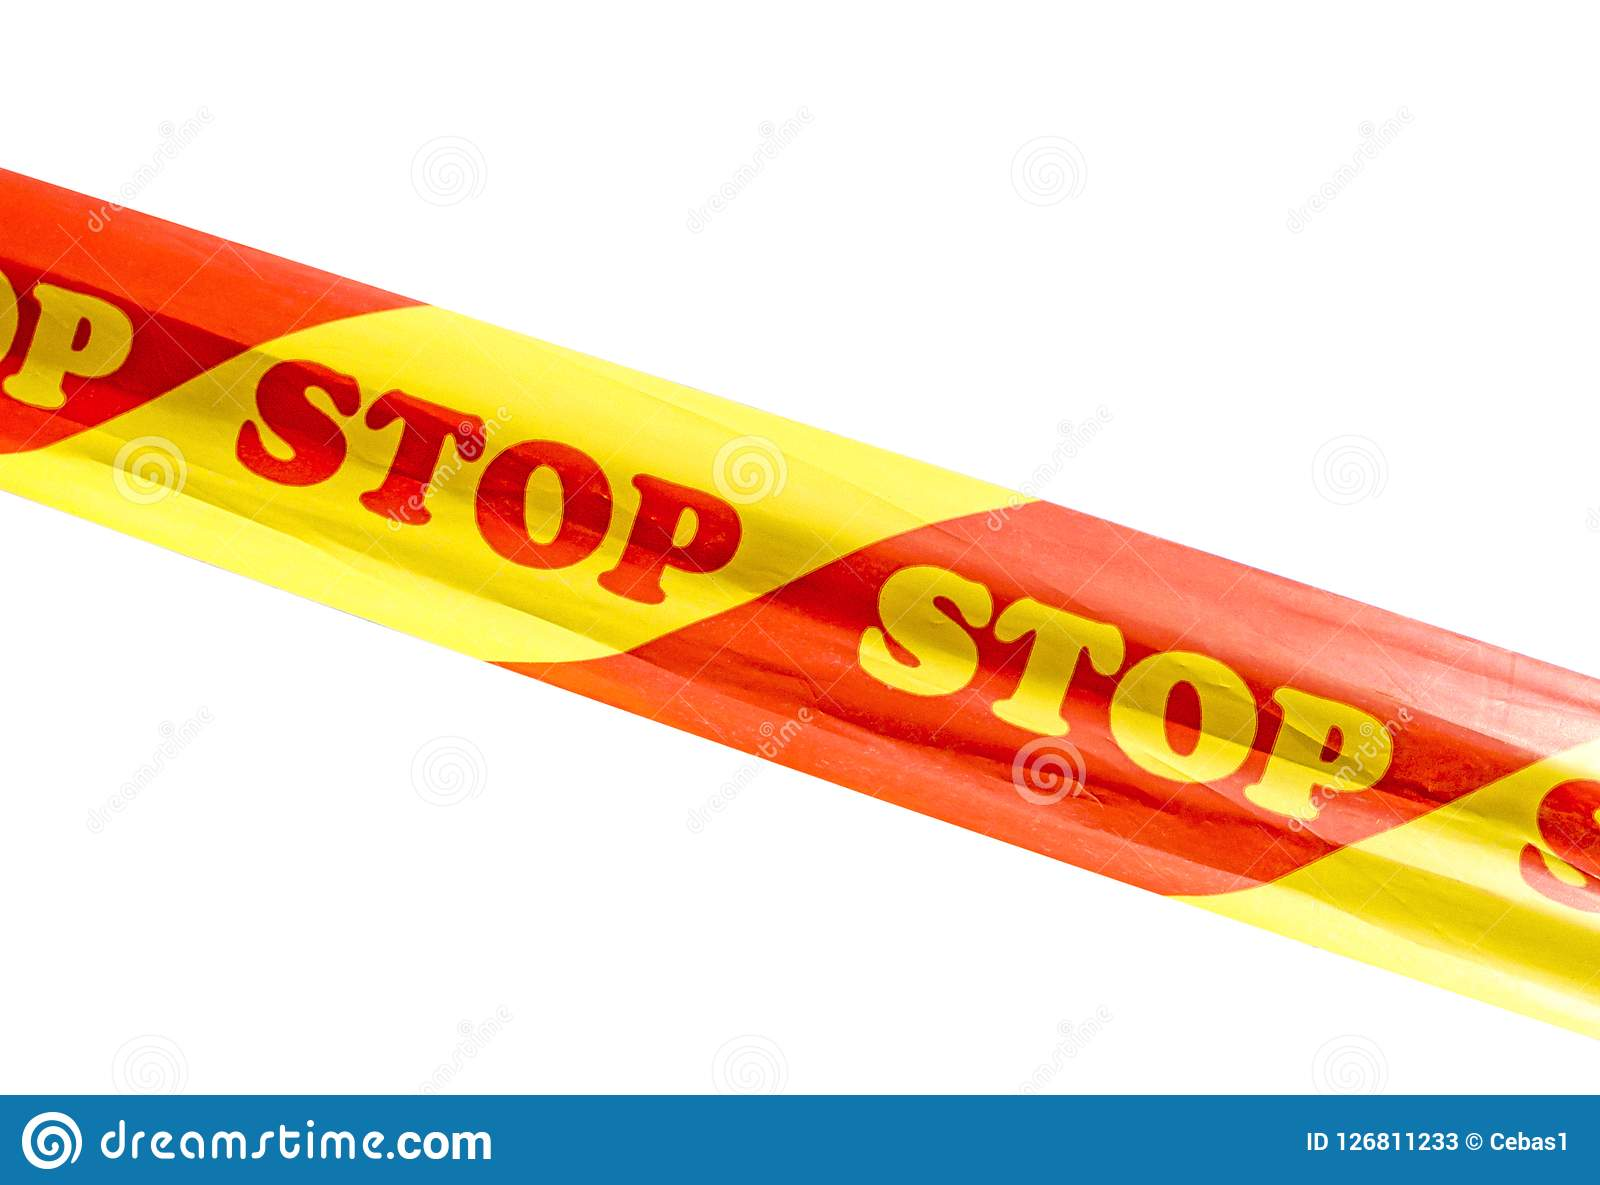 Warning tape with STOP sign isolated on white background